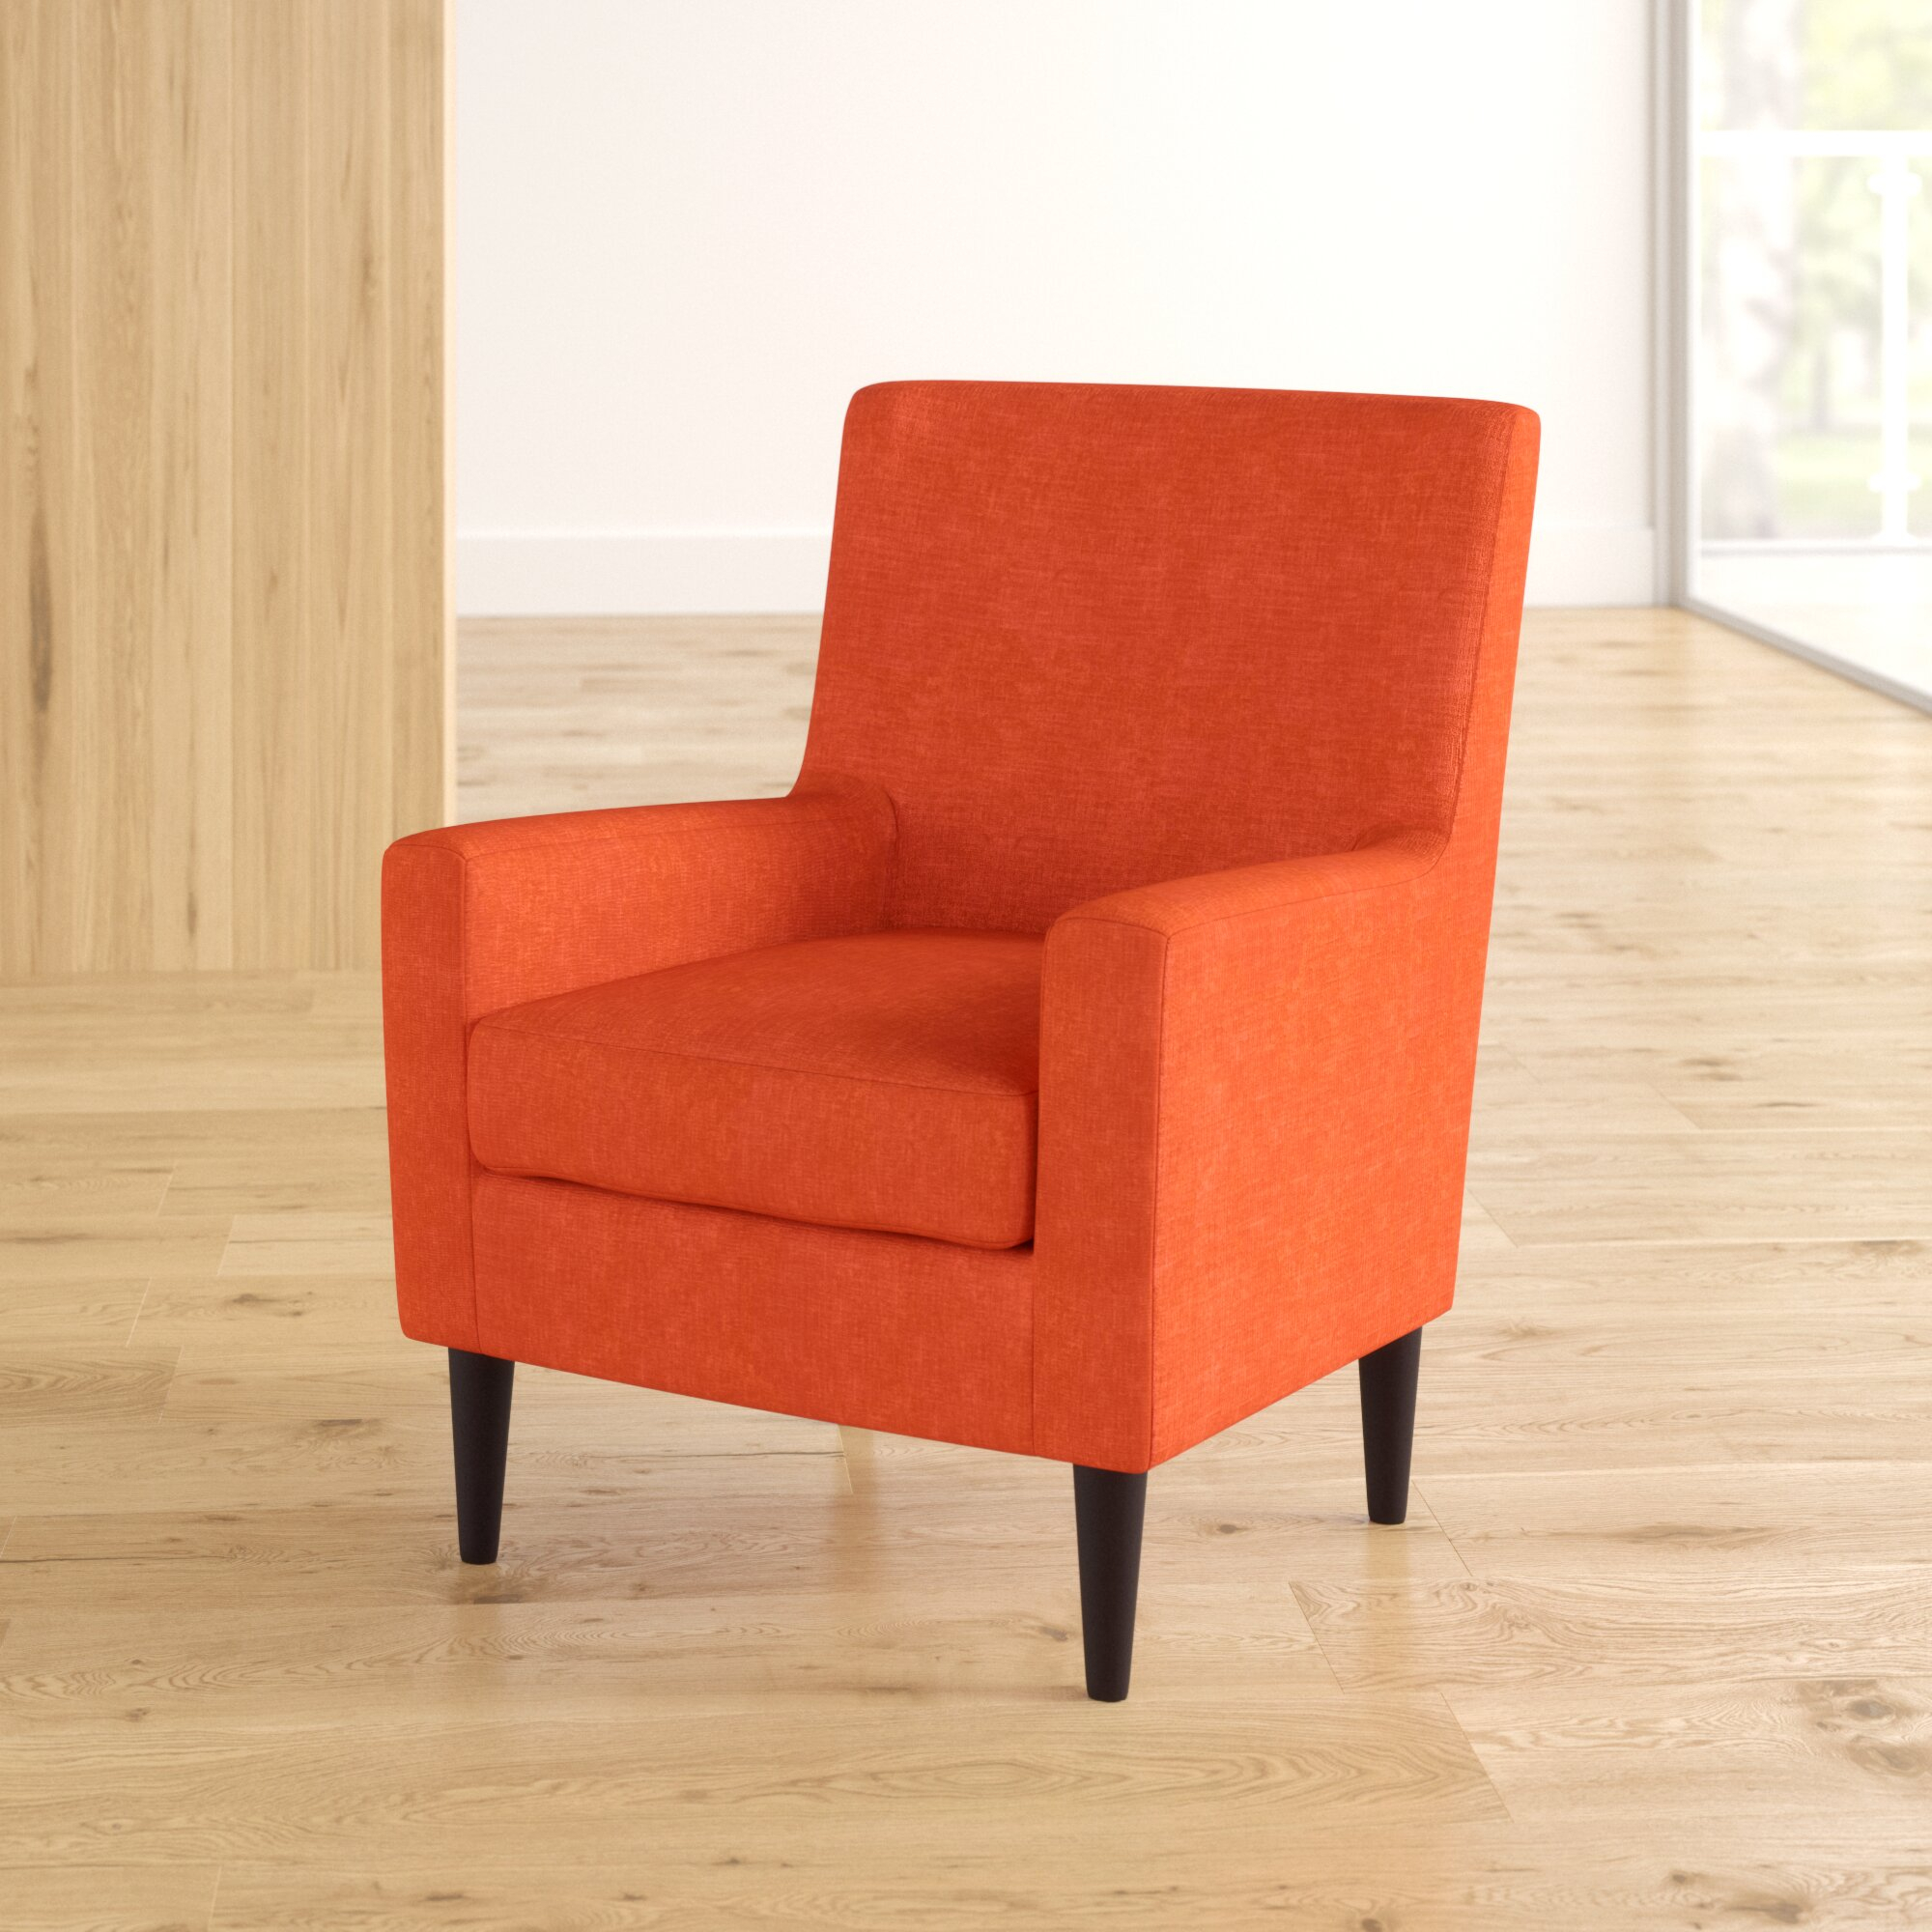 Donham Lounge Chair Intended For Donham Armchairs (View 12 of 15)